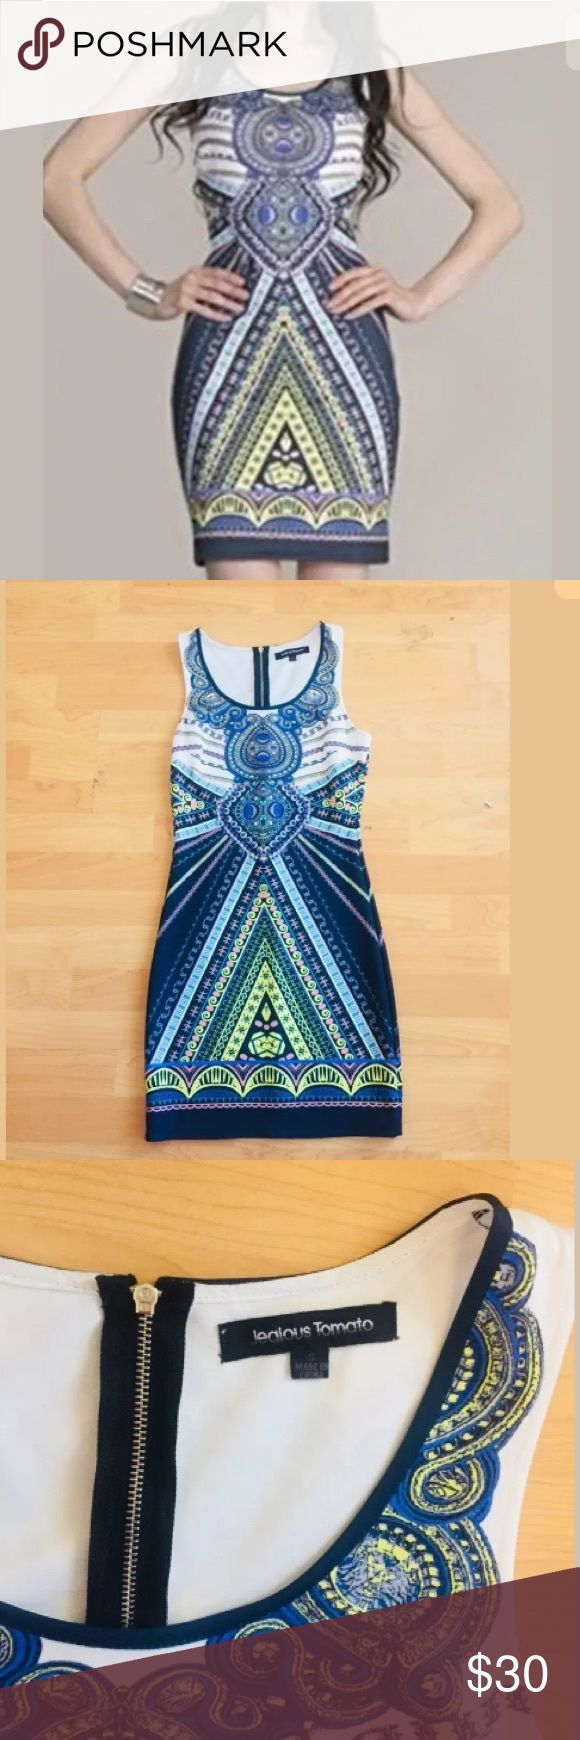 """Jealous Tomato Aztec Bodycon dress size S Jealous Tomato Aztec Bodycon dress  Size s  Bust 30""""  Length 35""""  Polyester/spandex  No rips or stains  In good condition jealous tomato Dresses"""